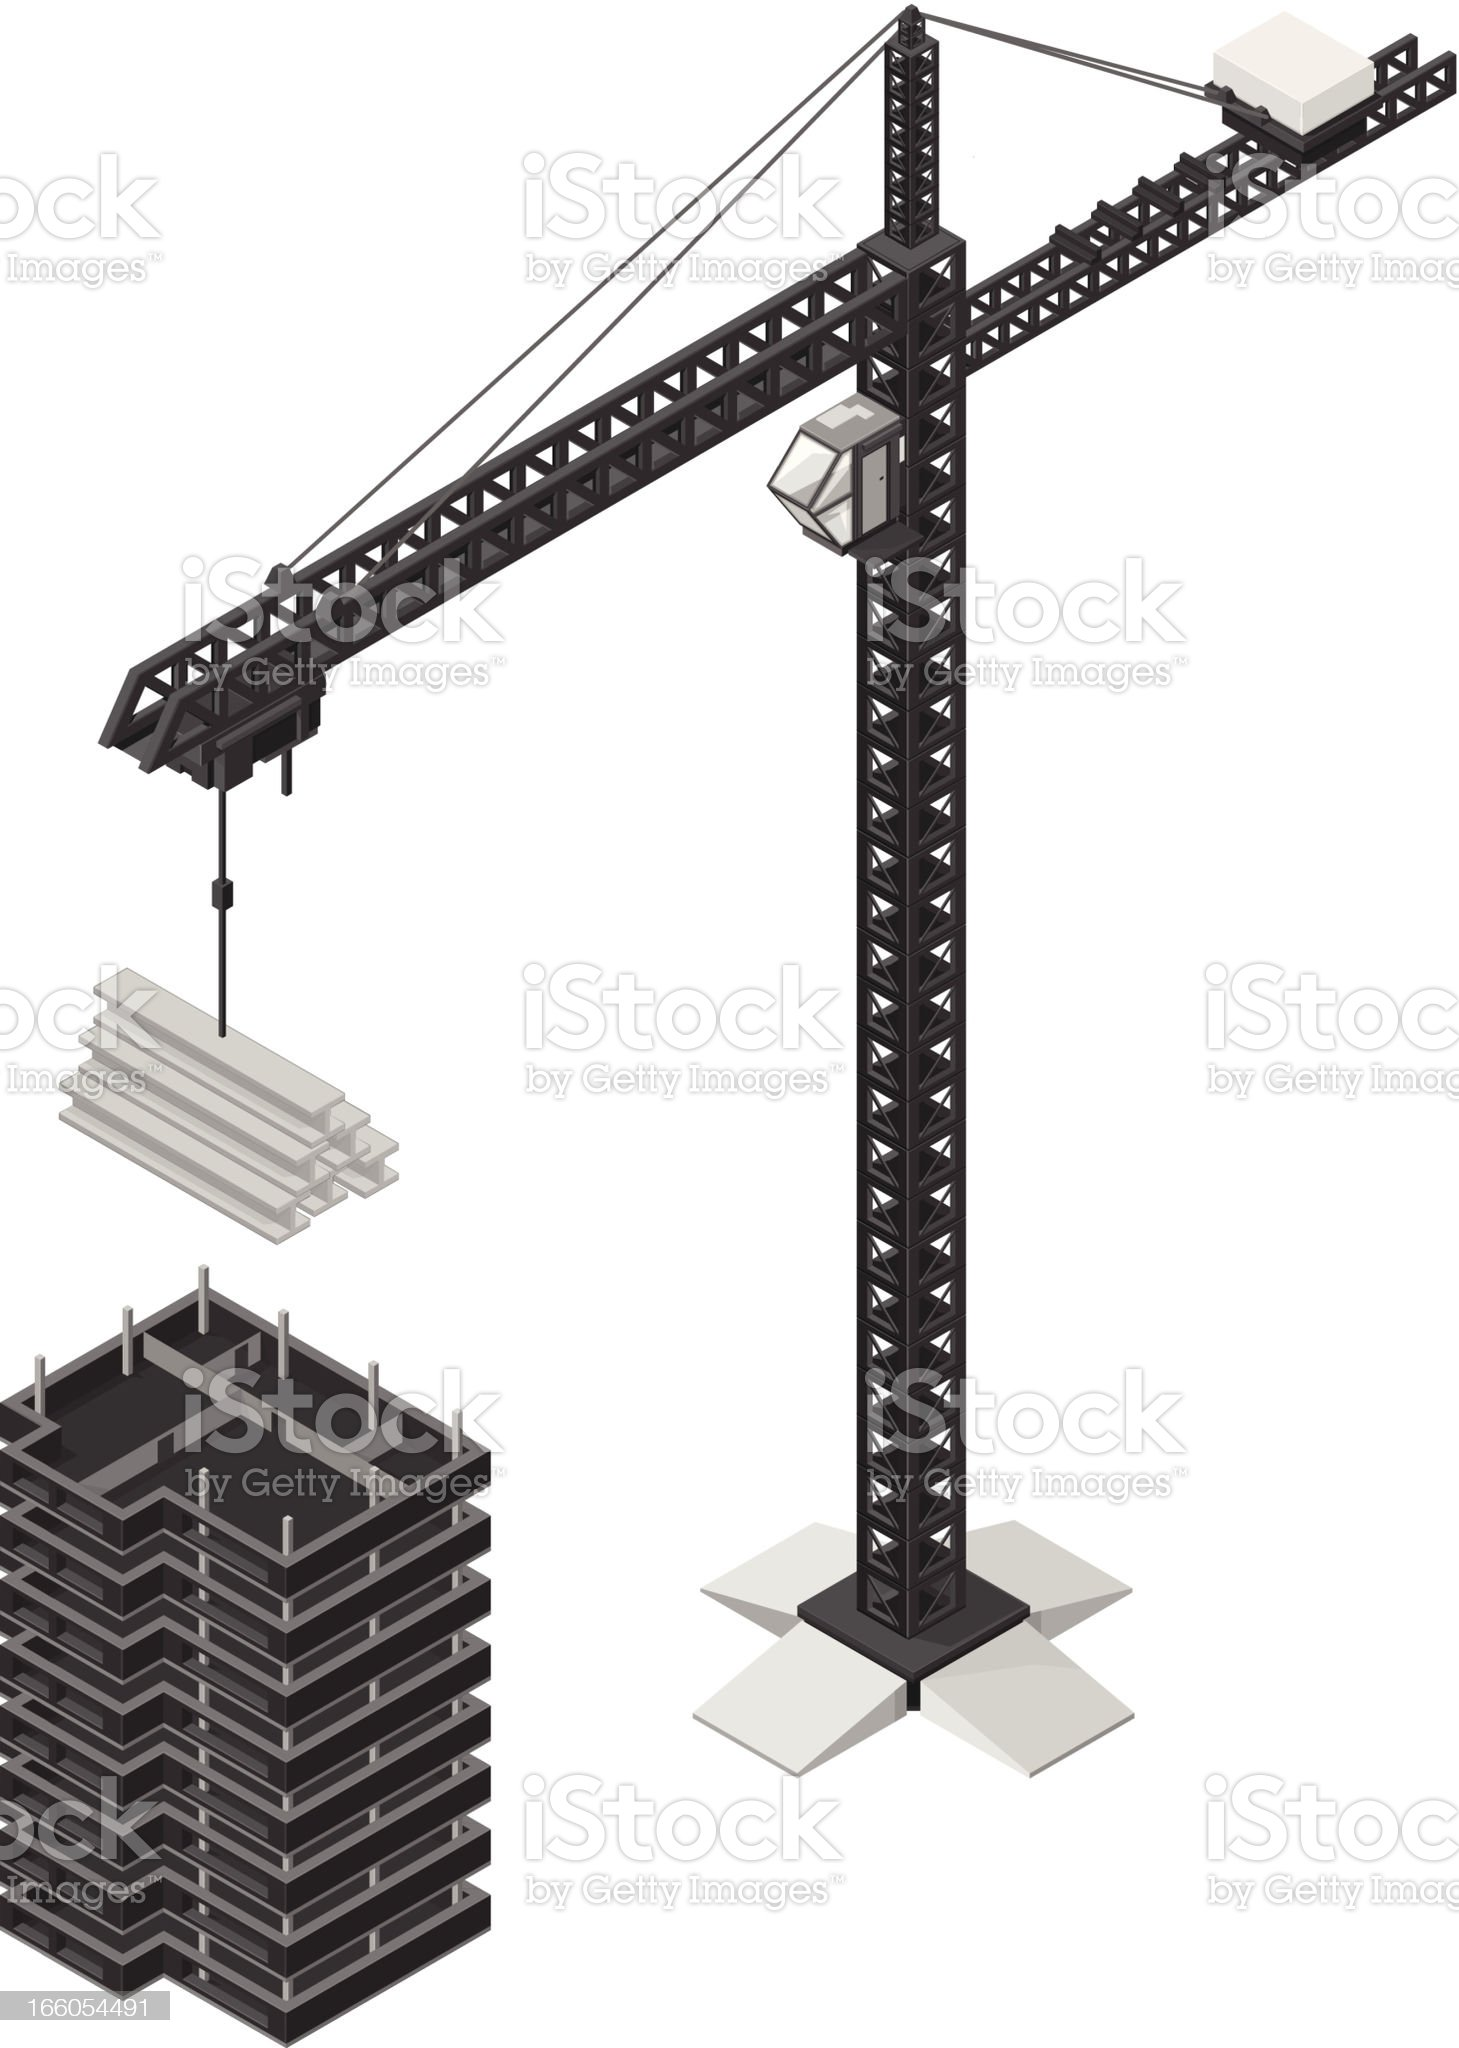 Office building Under Construction royalty-free stock vector art